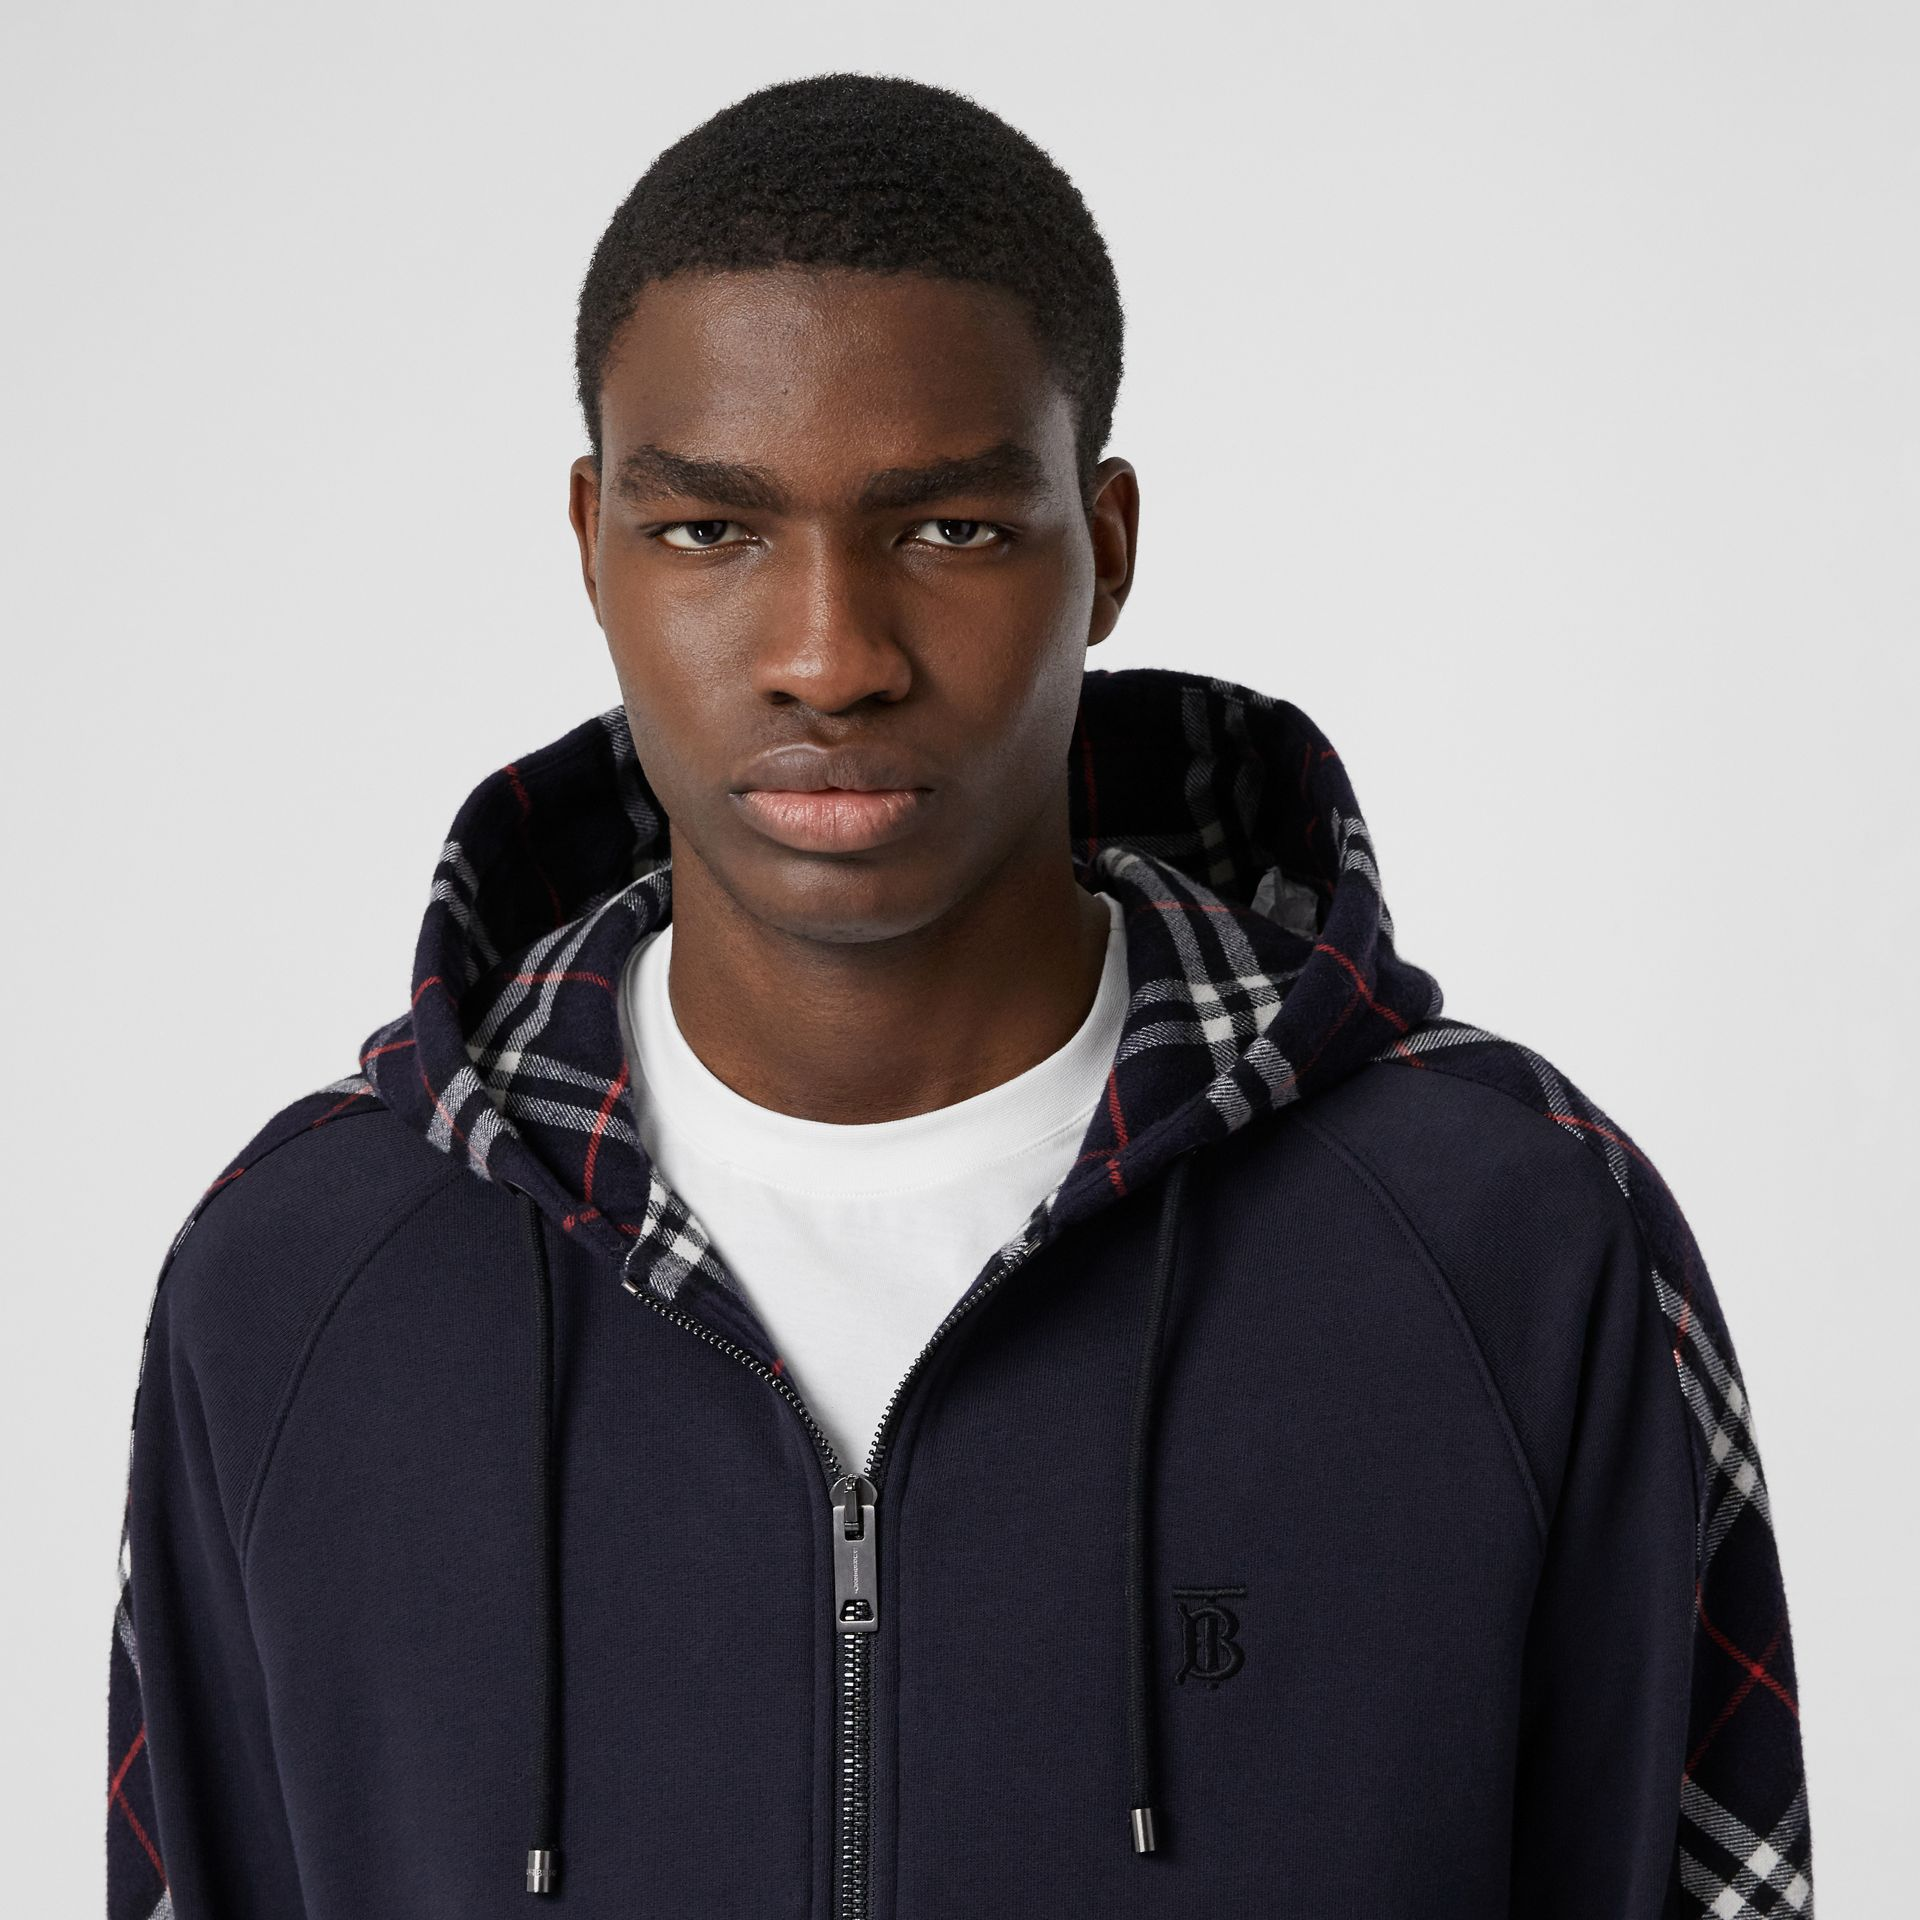 Vintage Check Panel Cotton Hooded Top in Navy - Men | Burberry United Kingdom - gallery image 1